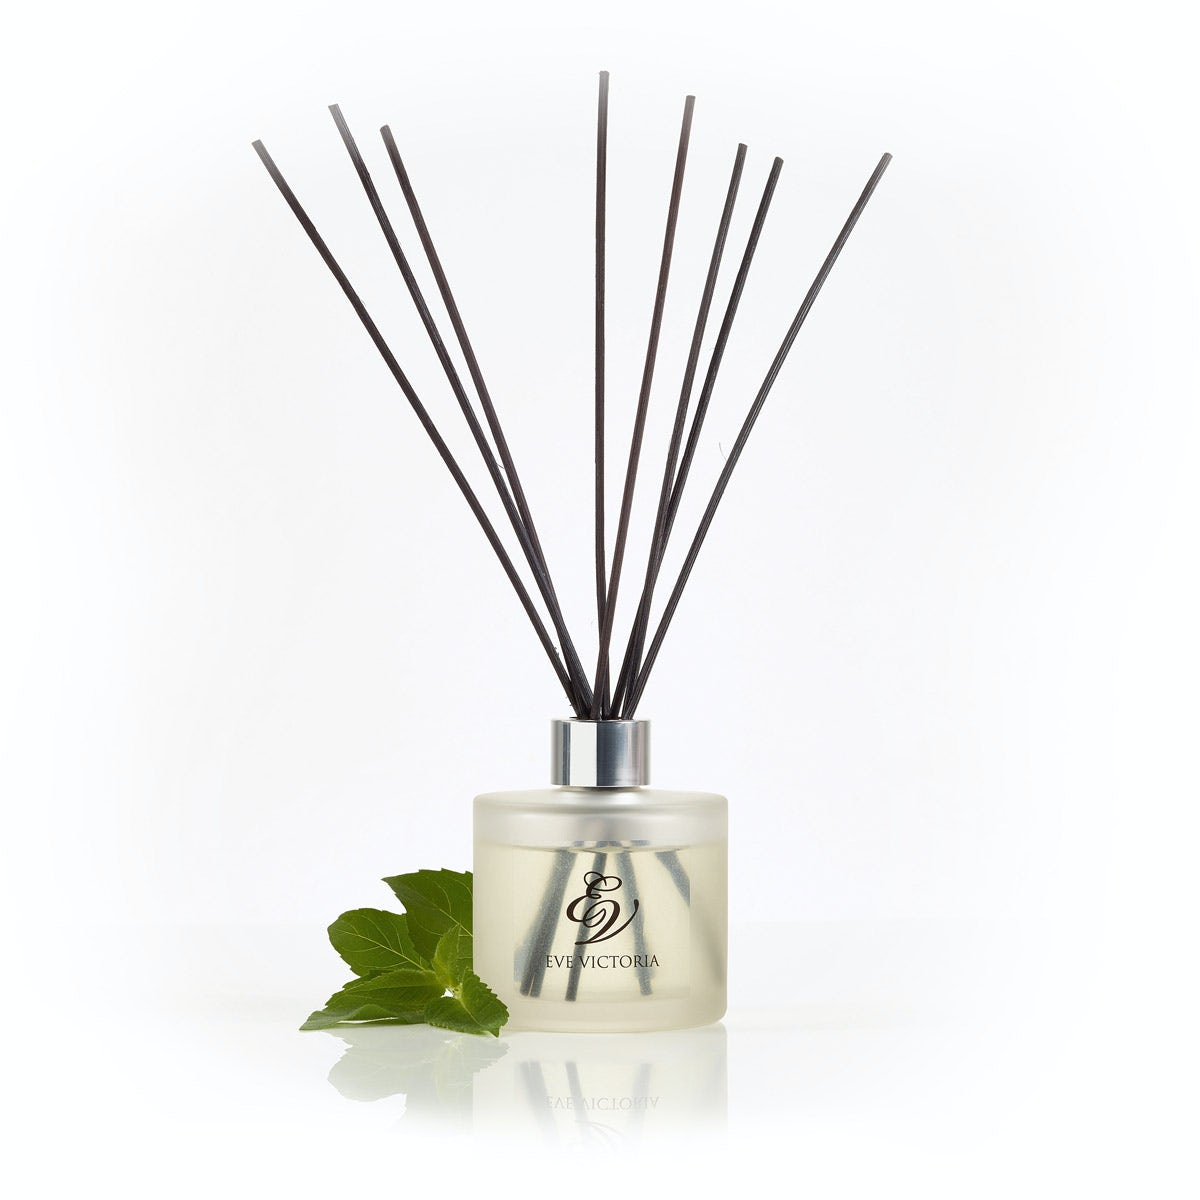 Eve Victoria Oud & bergamot reed diffuser 150ml